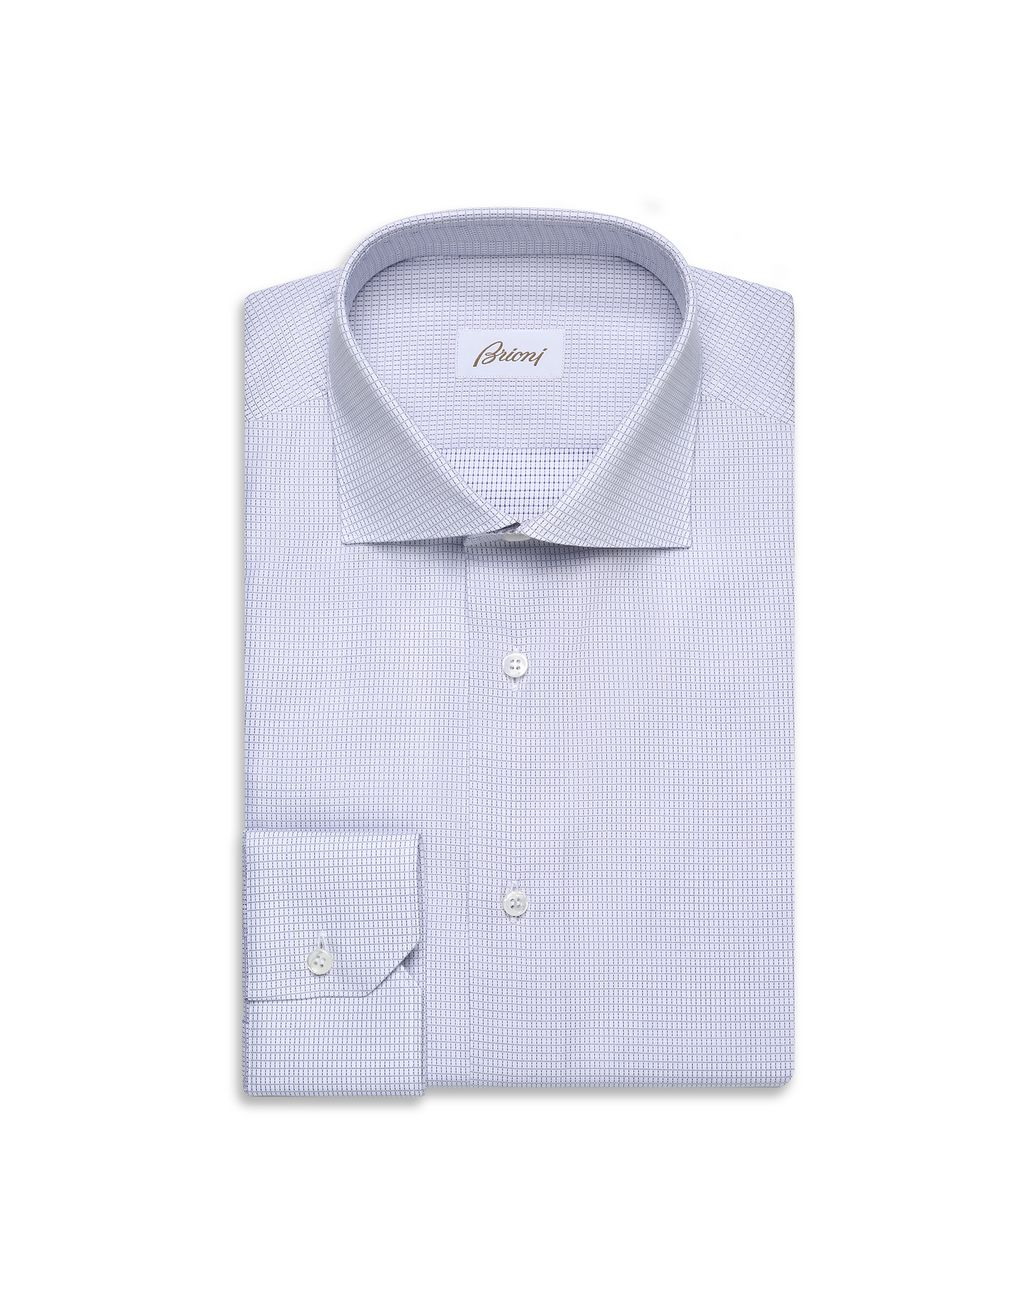 BRIONI Bluette and White Micro-Designed Formal Shirt Formal shirt Man f